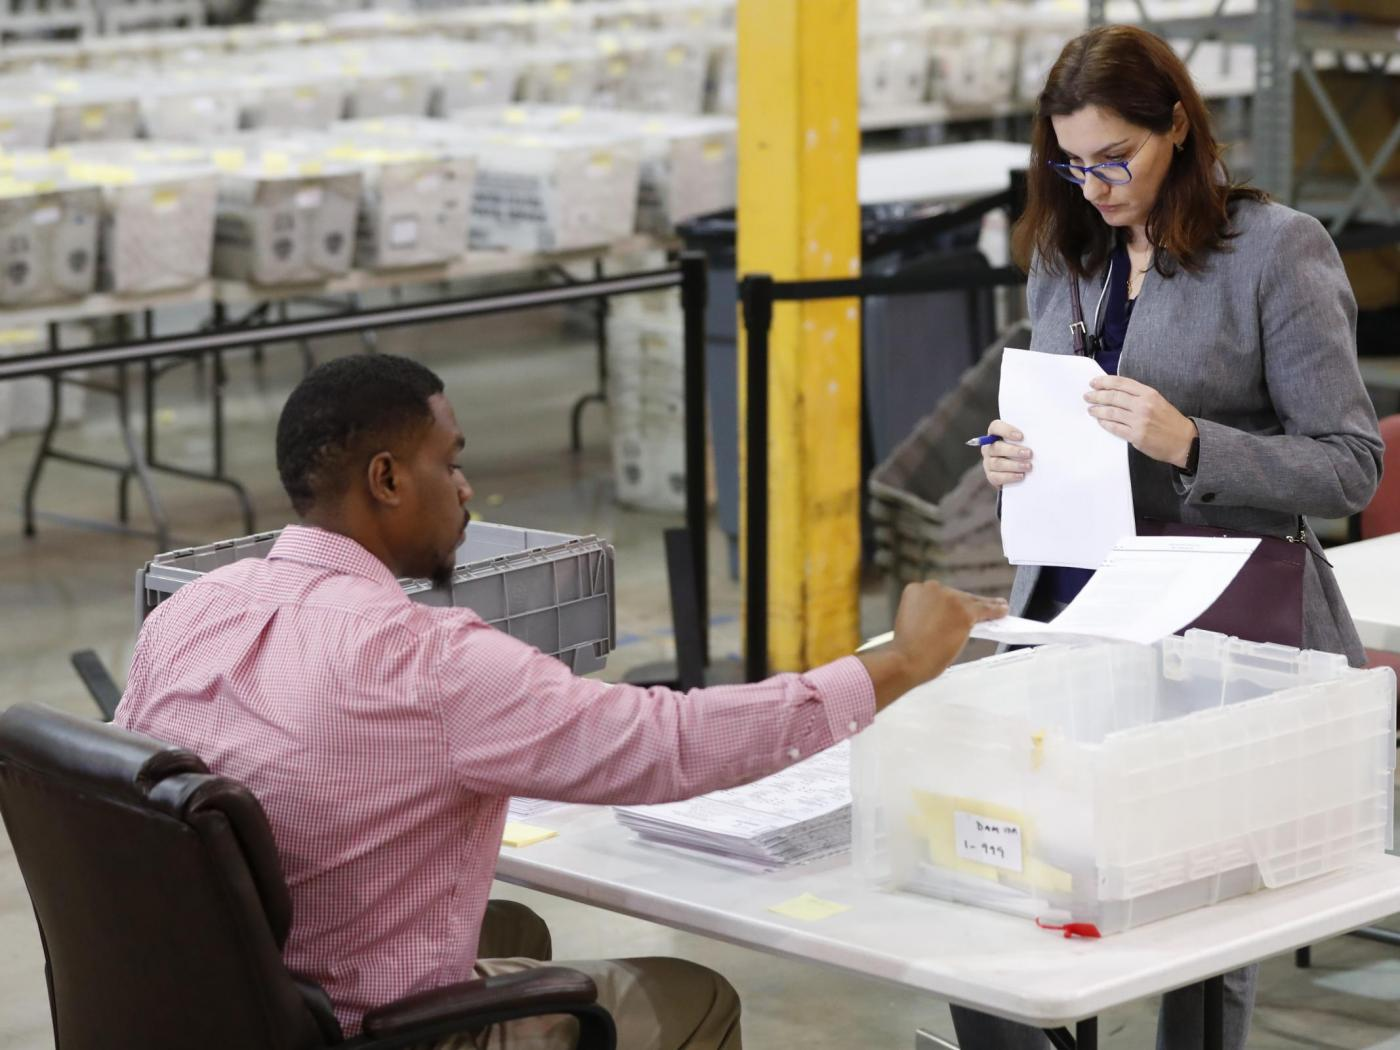 A Republican party observer, right, watches as an employee at the Palm Beach County Supervisor Of Elections office goes through a stack of damaged ballots, Thursday, Nov. 15, 2018, in West Palm Beach, Fla.